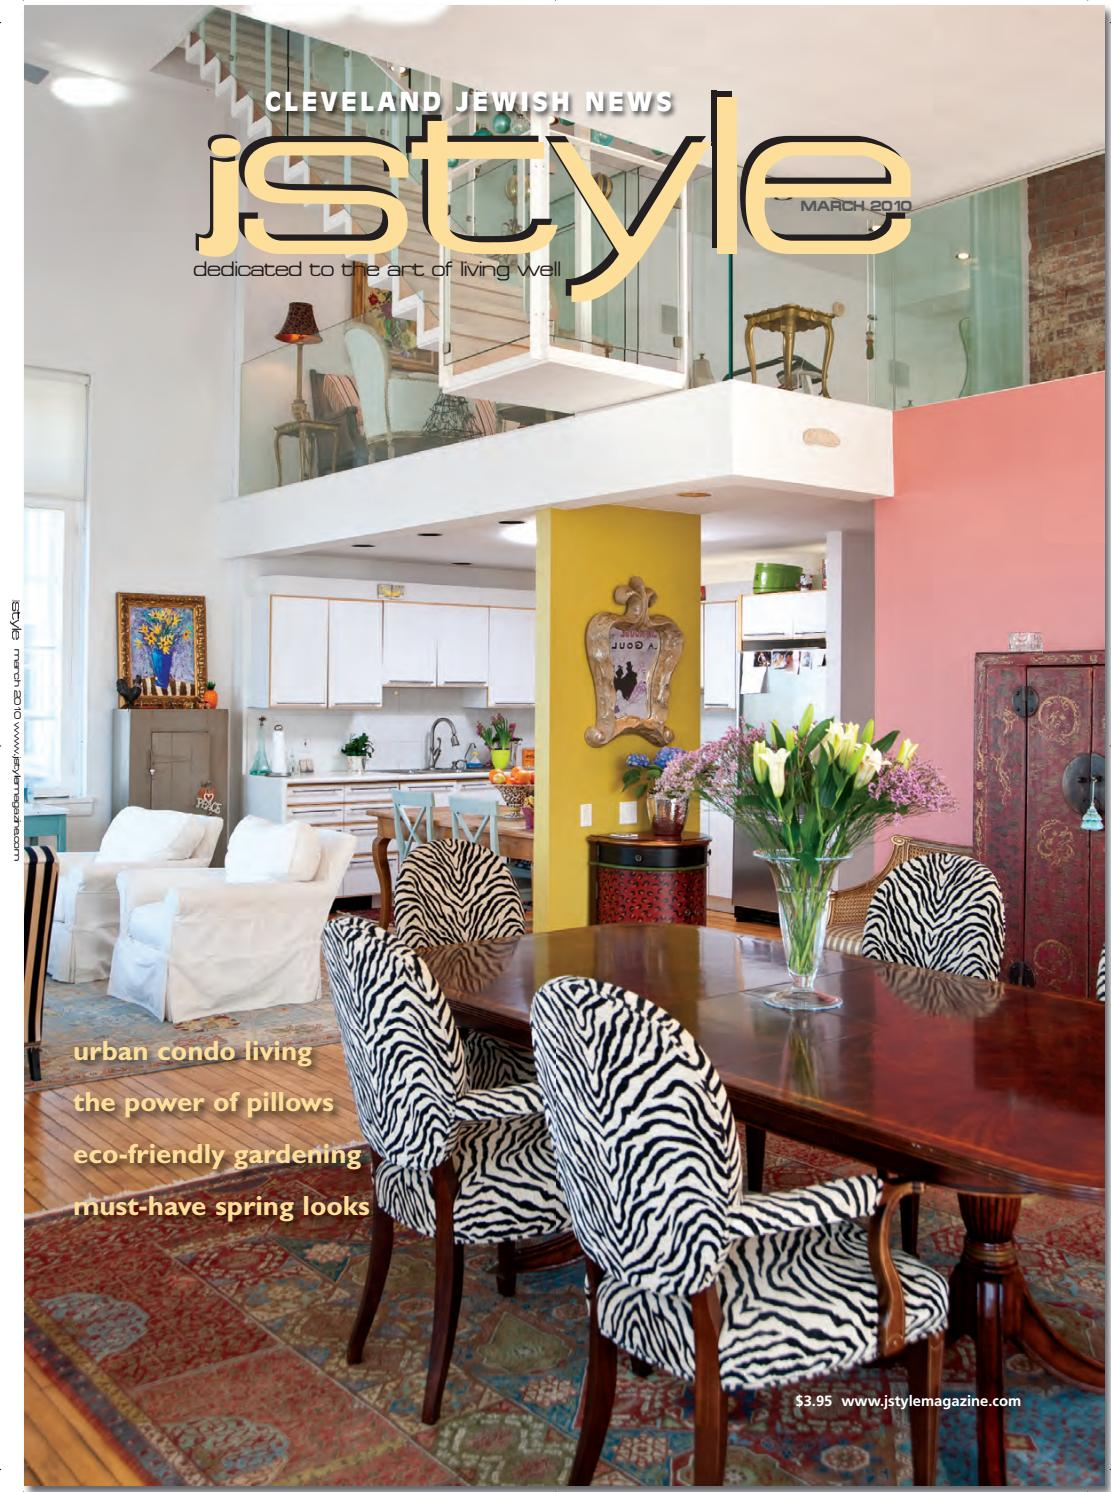 d8175e1752dc Jstyle March 2010 by Cleveland Jewish Publication Company - issuu